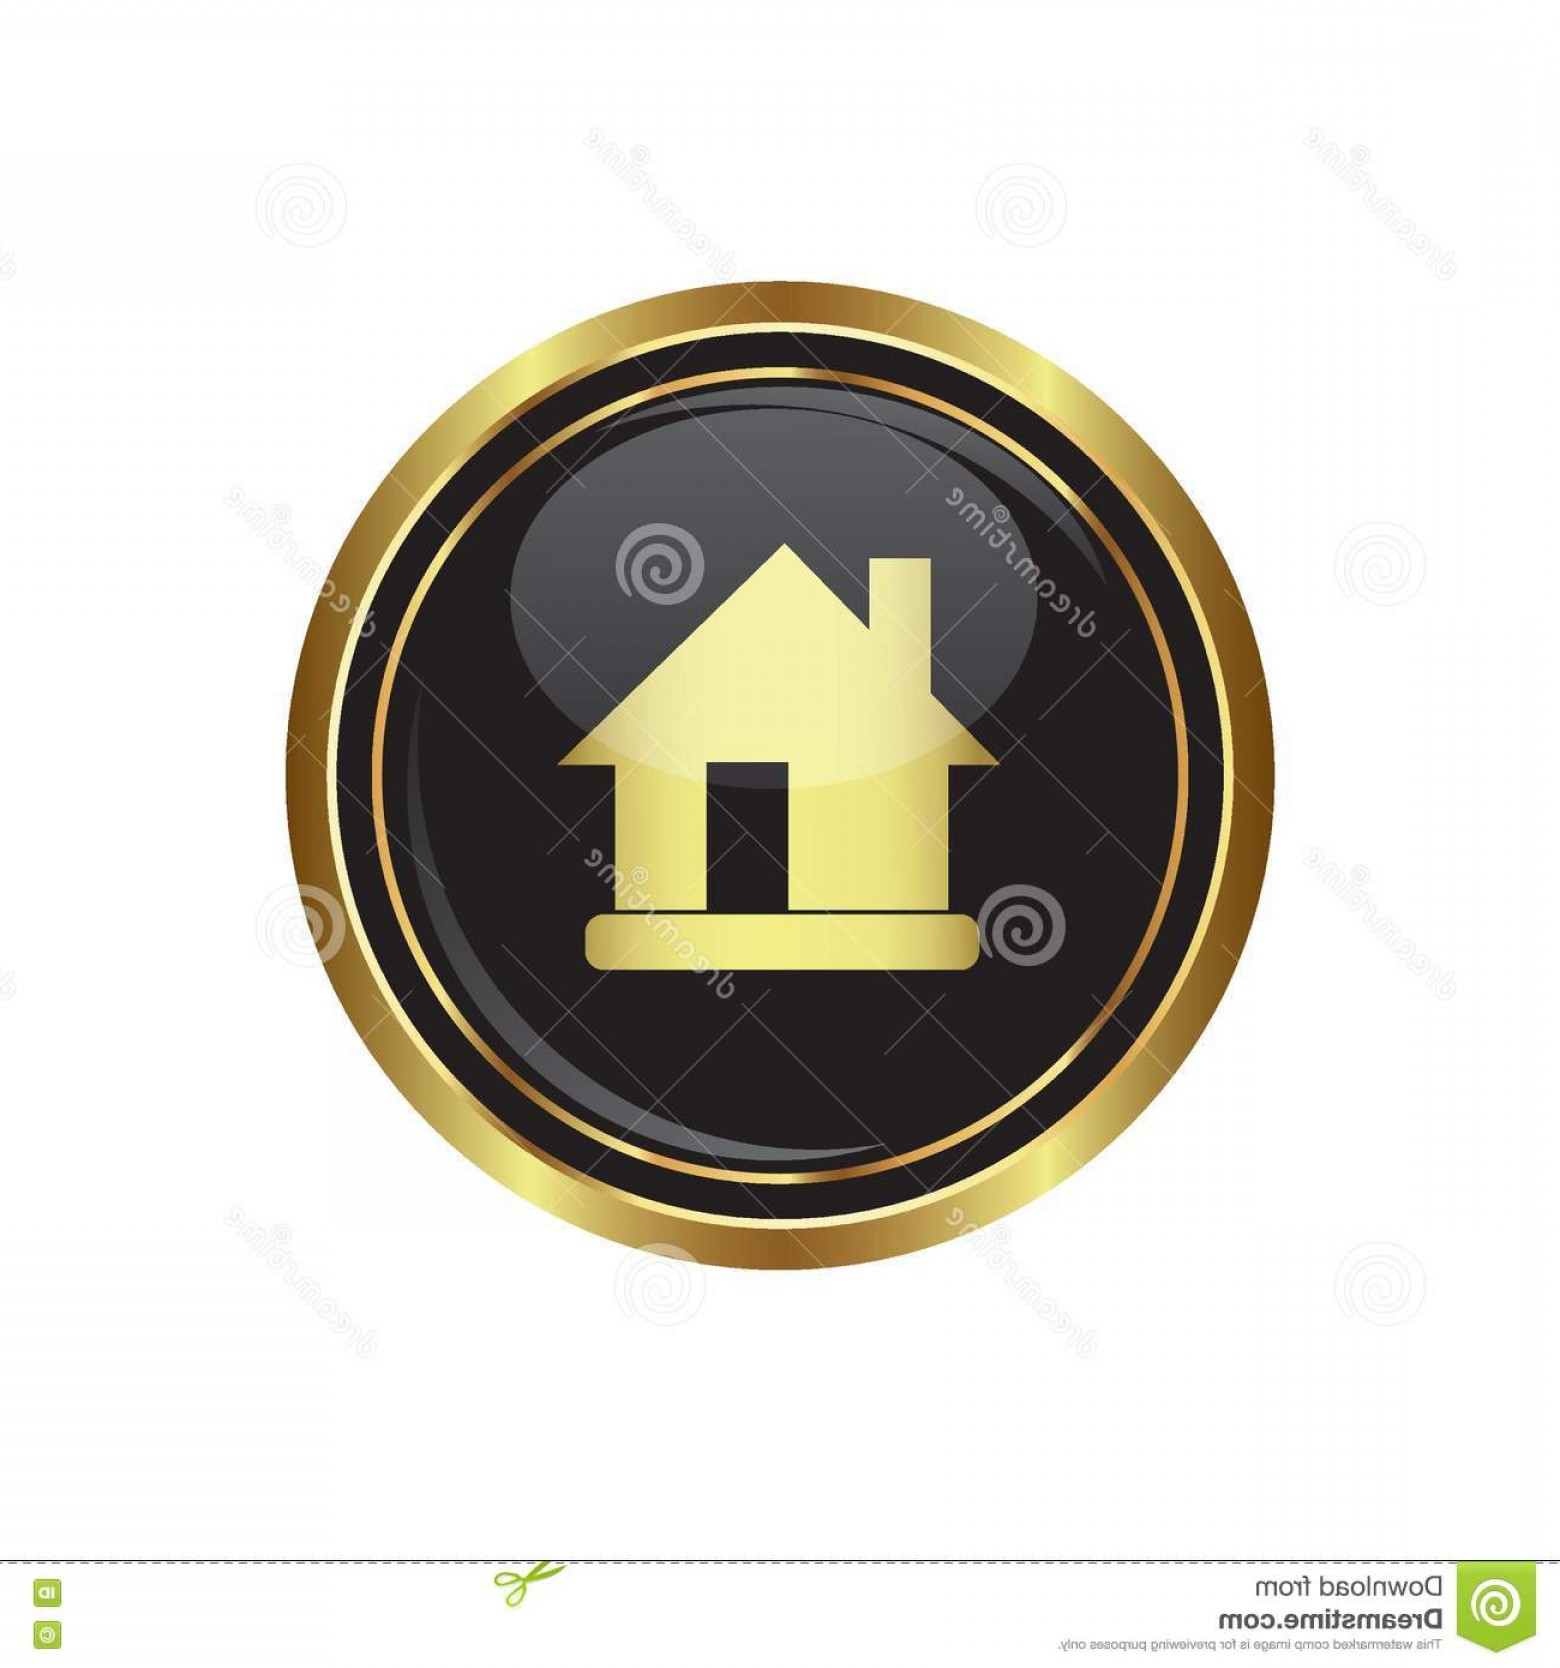 Gold Button Vector: Stock Illustration House Icon Black Gold Round Button Vector Illustration Image